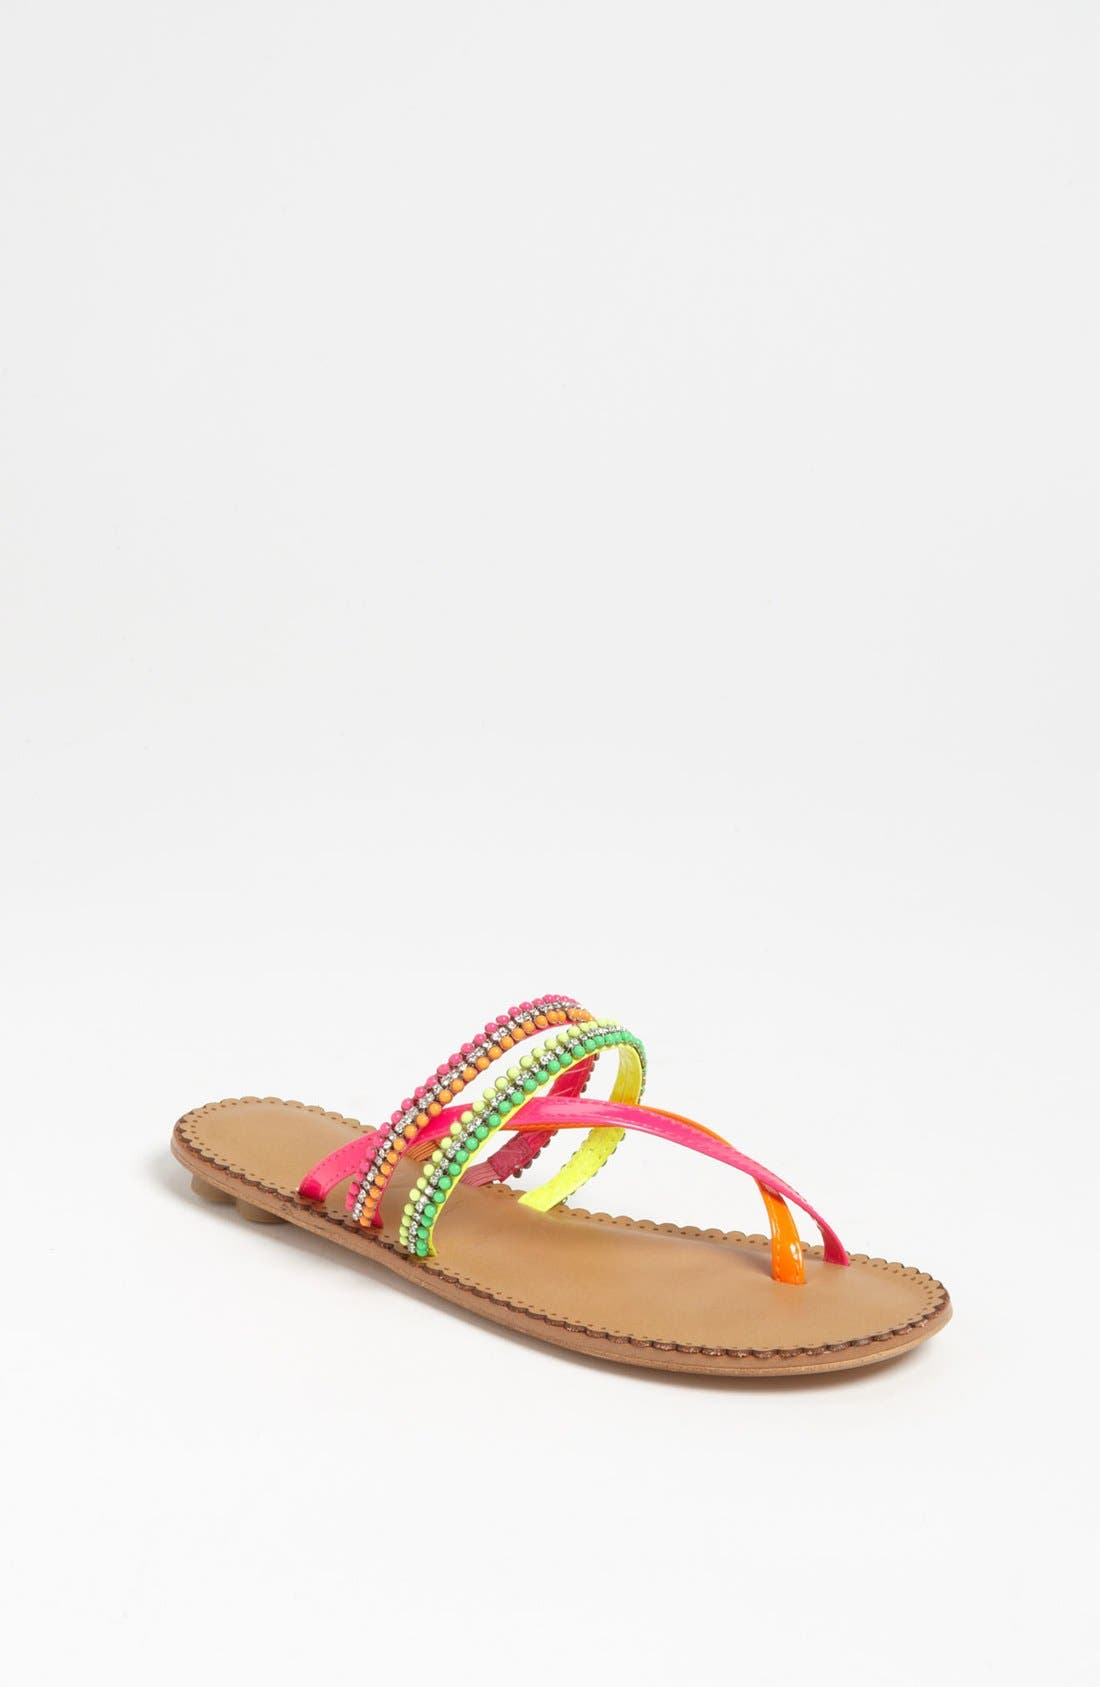 Alternate Image 1 Selected - Lucky Sole 'Piazza' Sandal (Little Kid & Big Kid)